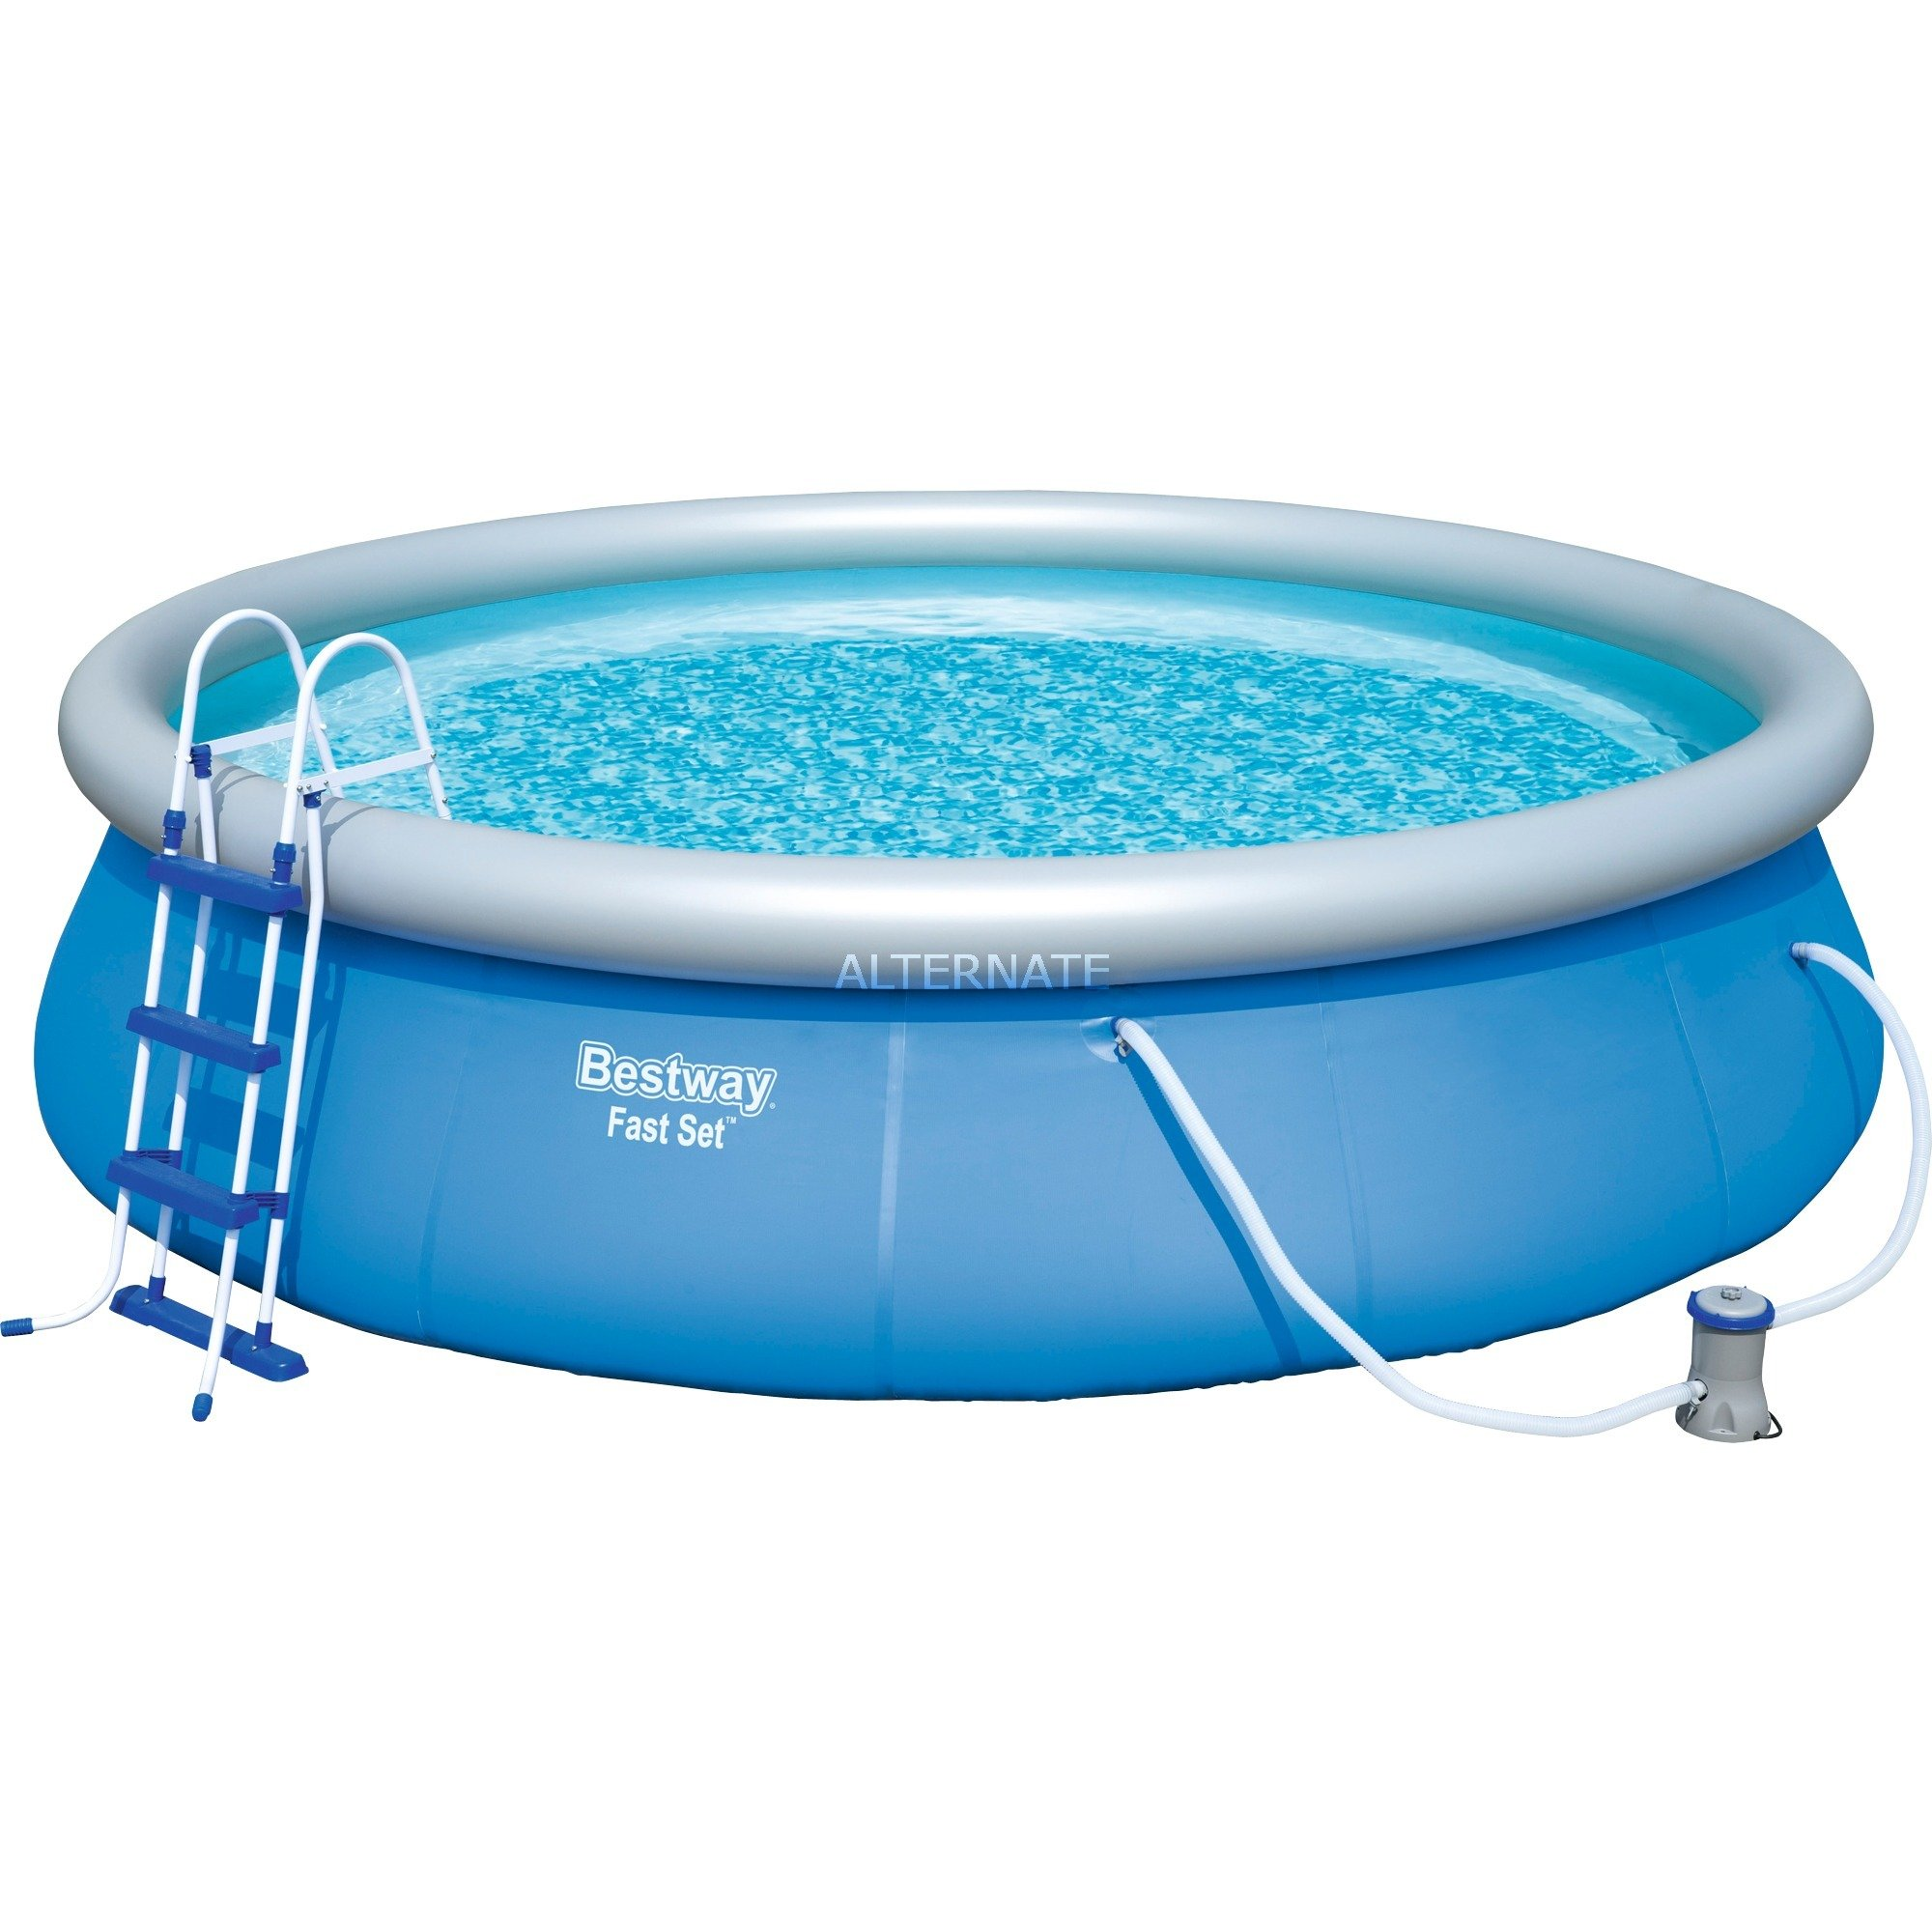 Termometro termometro piscina sport shopping for Bestway pool obi